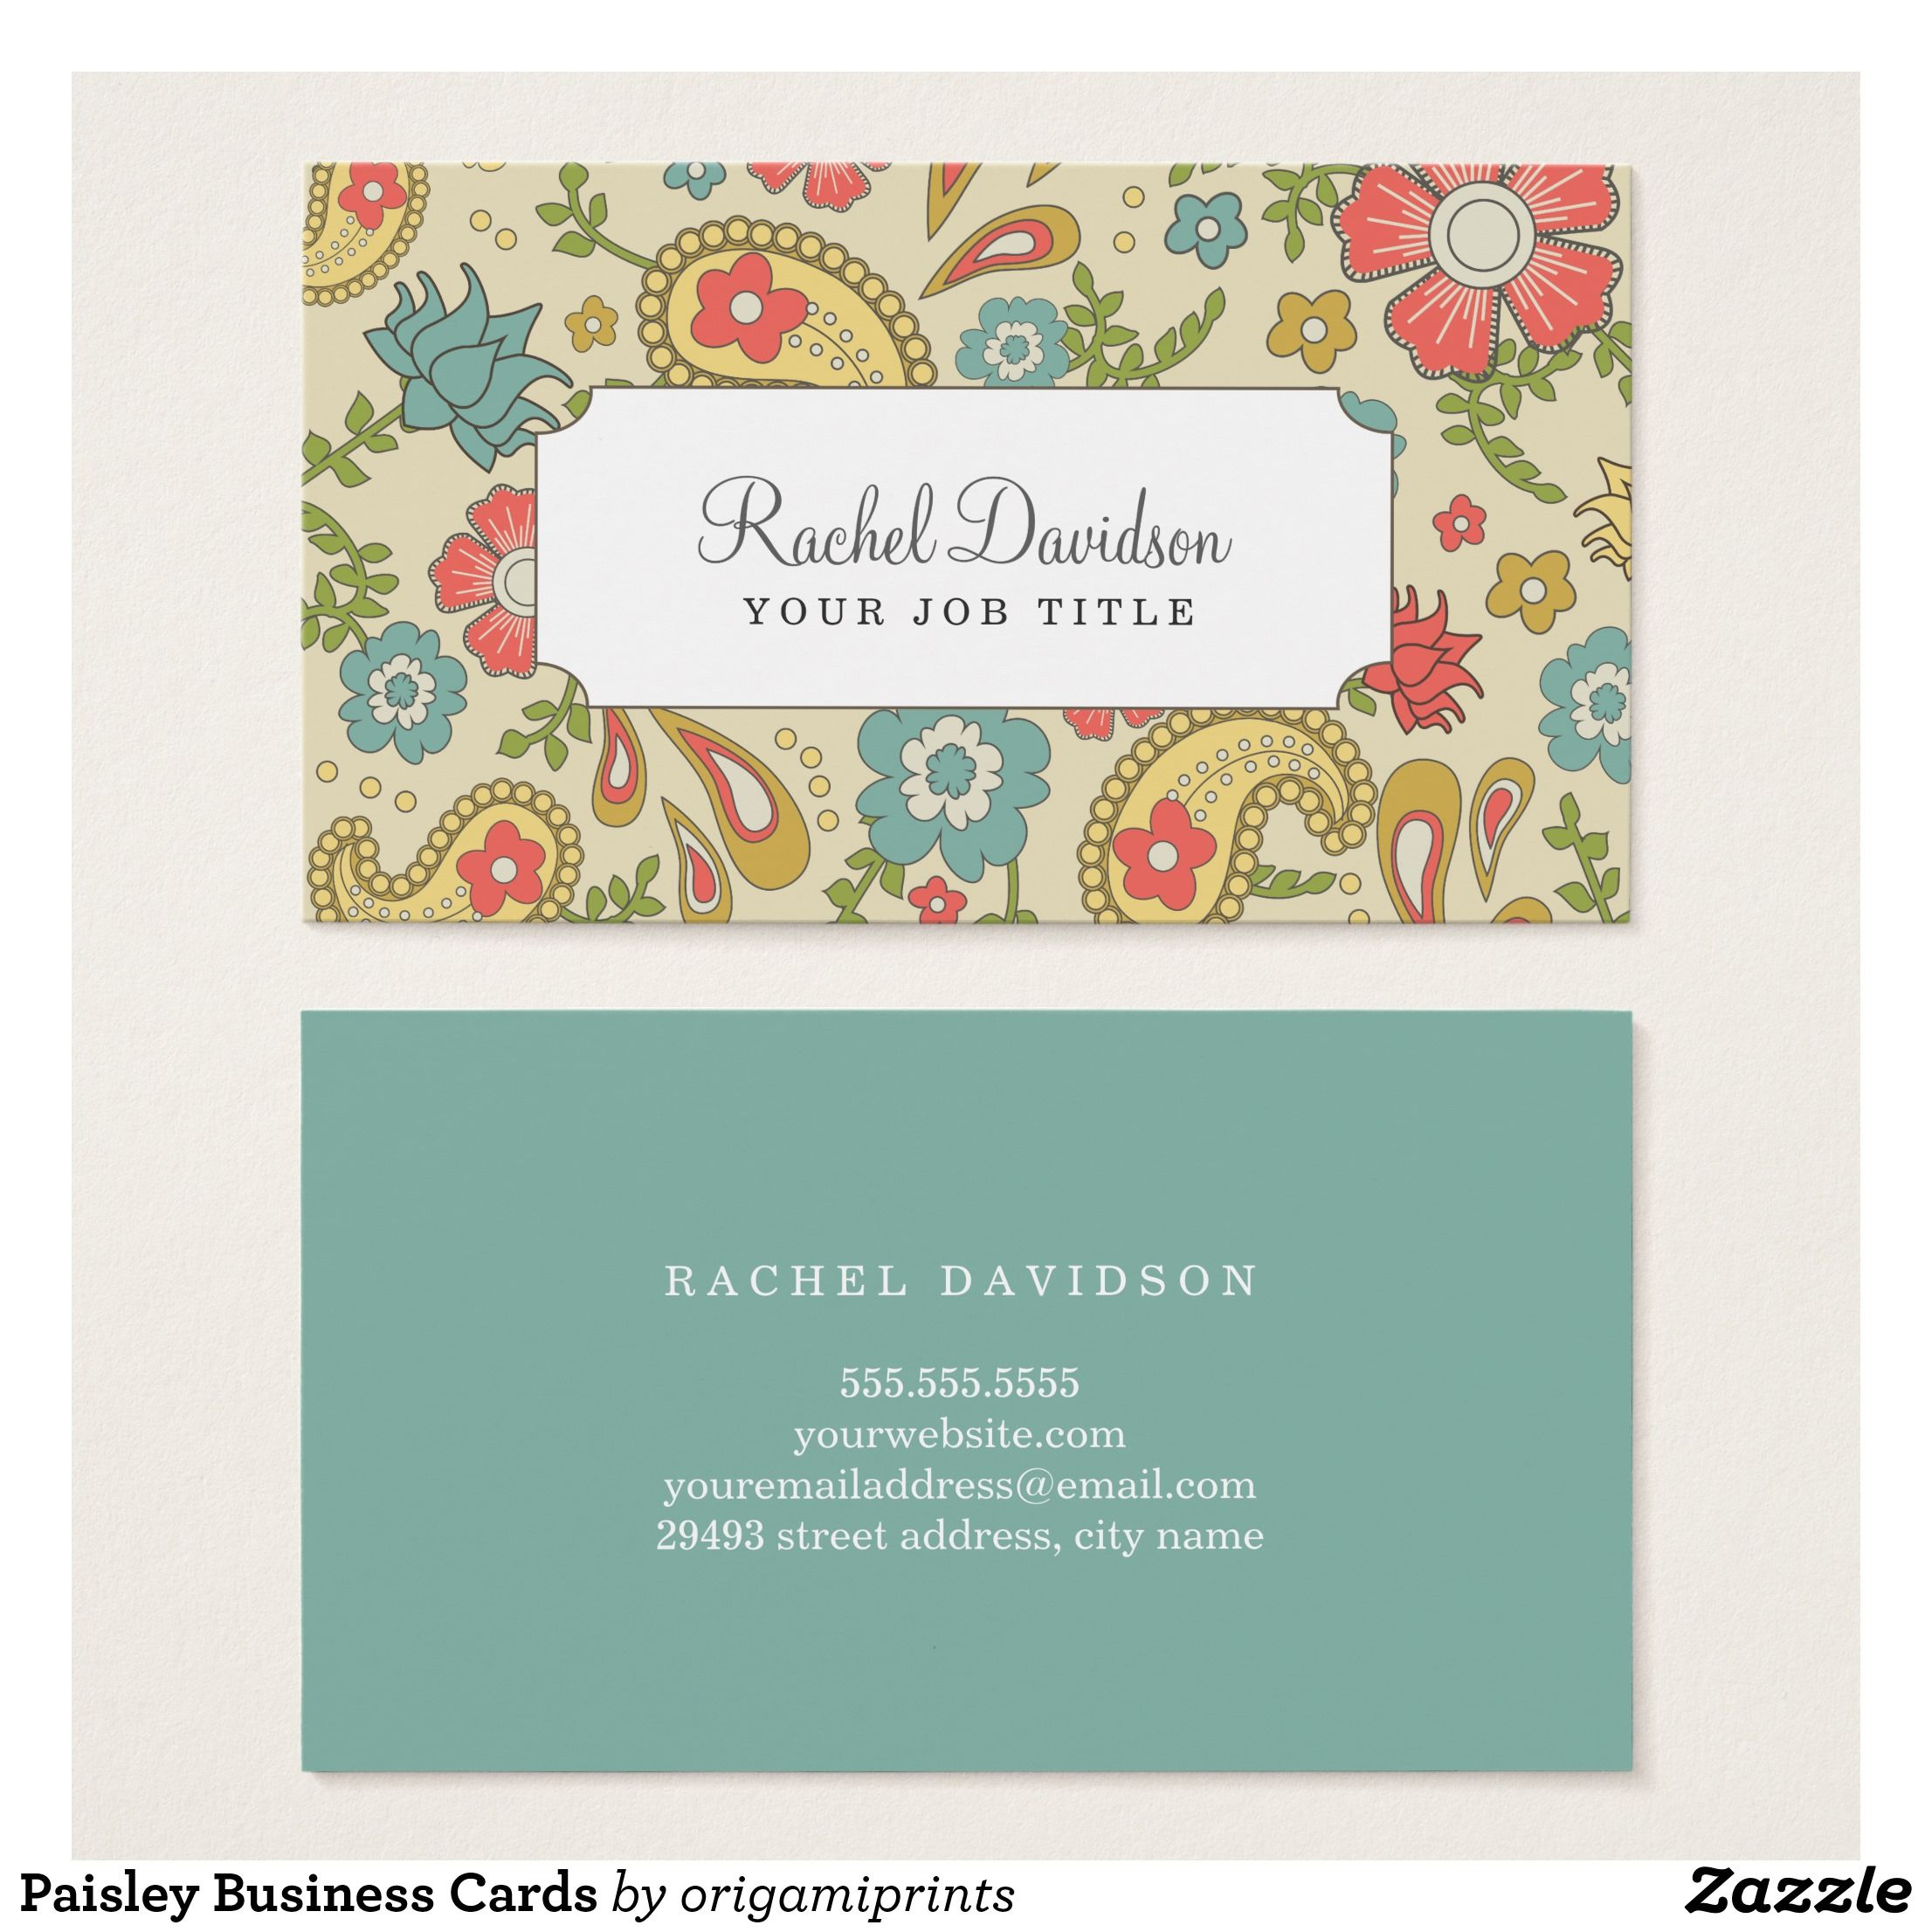 Paisley Business Cards | Business cards and Business